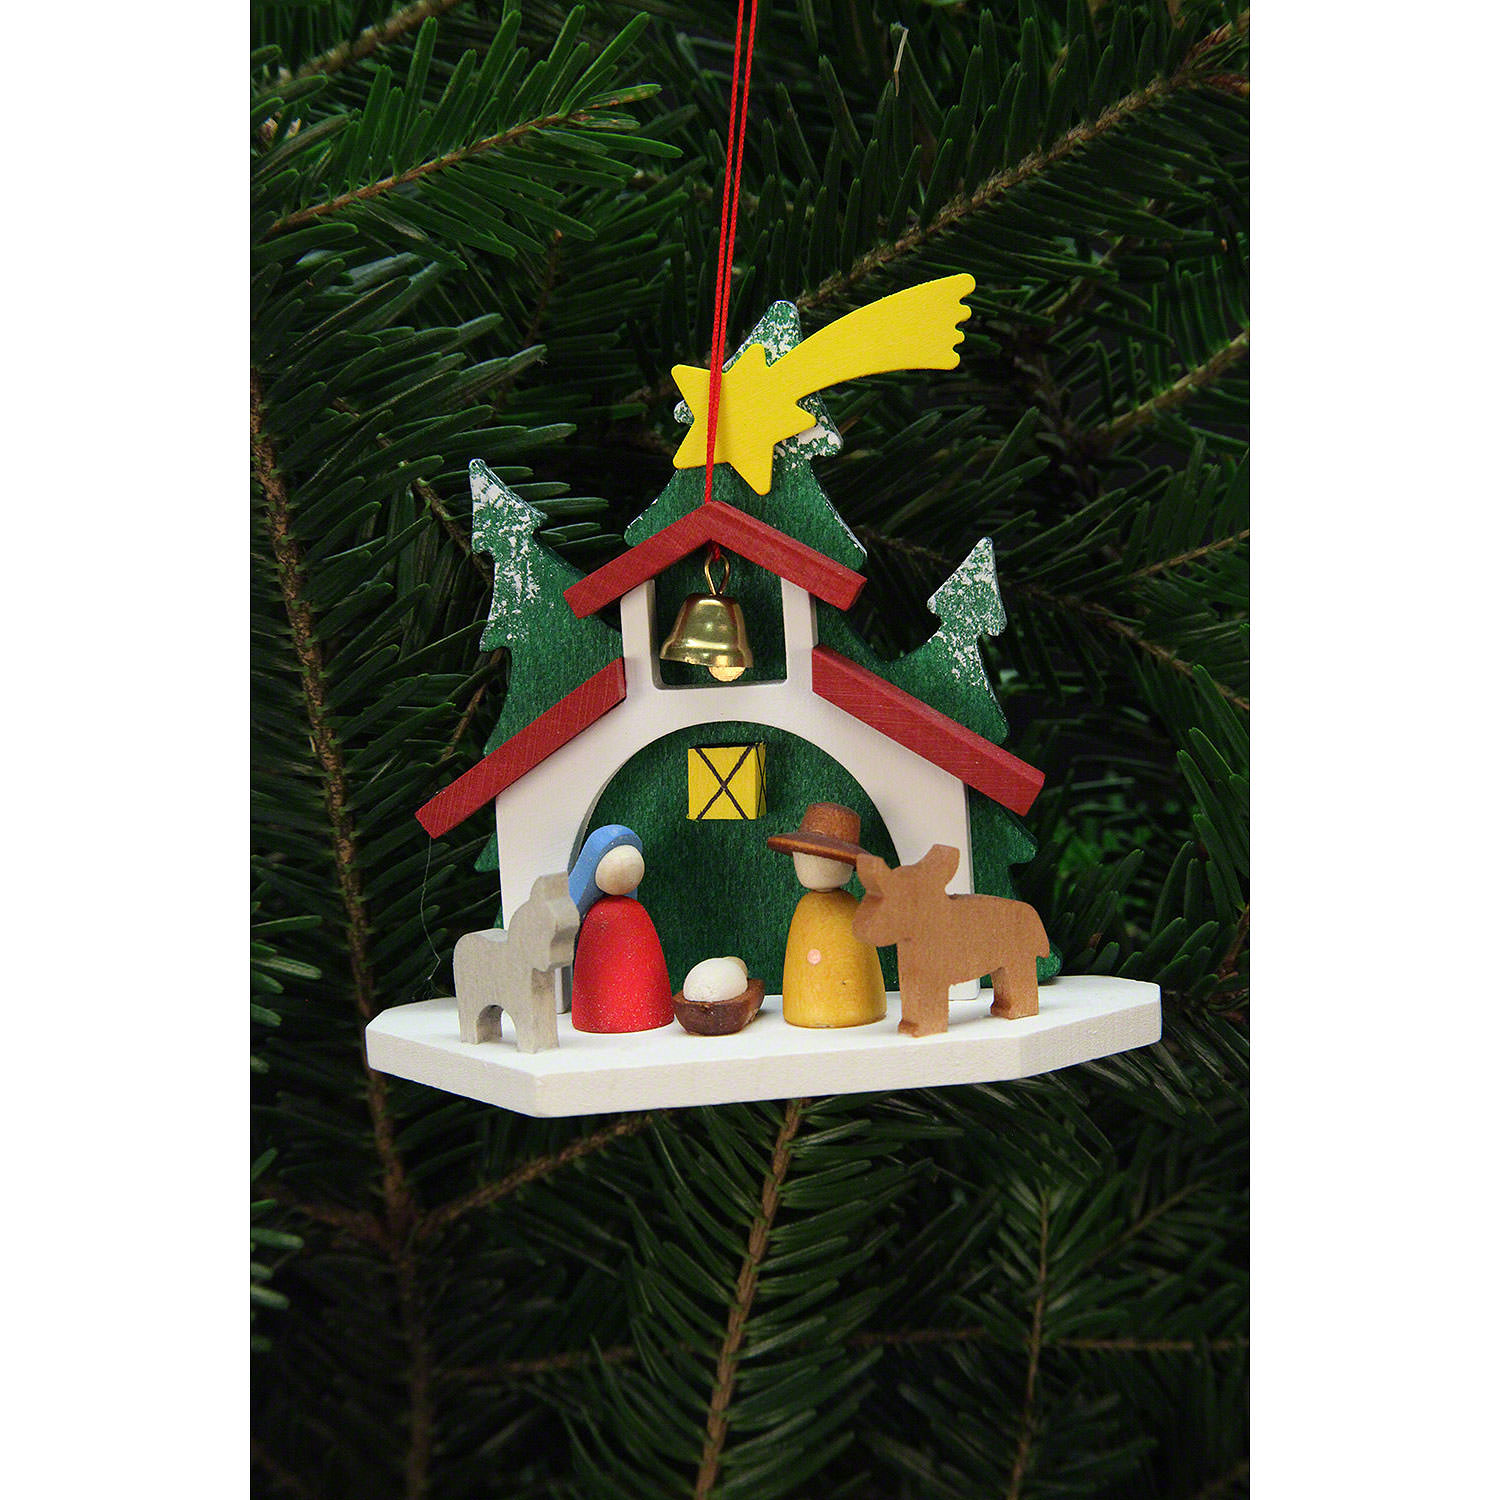 Tree Ornament Chapel With The Holy Family 9 2 8 8 Cm 4 3in By Christian Ulbricht